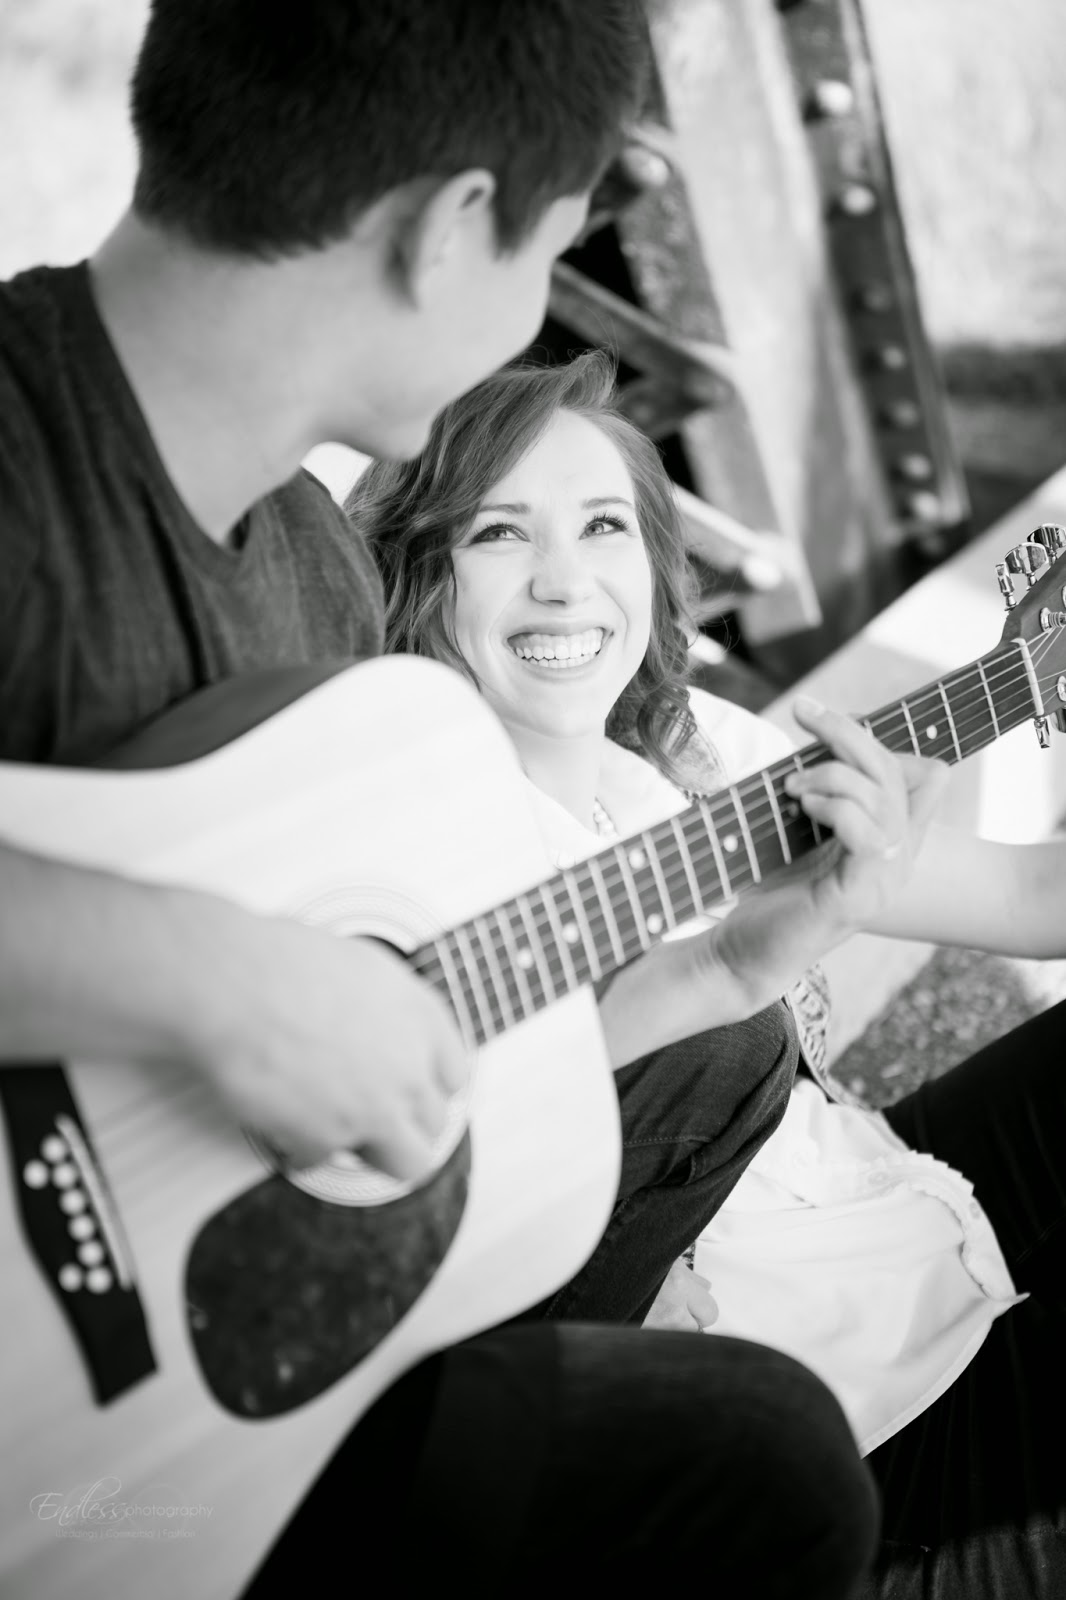 Logan Wedding Photographer Engagements Couples Adorable Cute Guitar Bridge Field